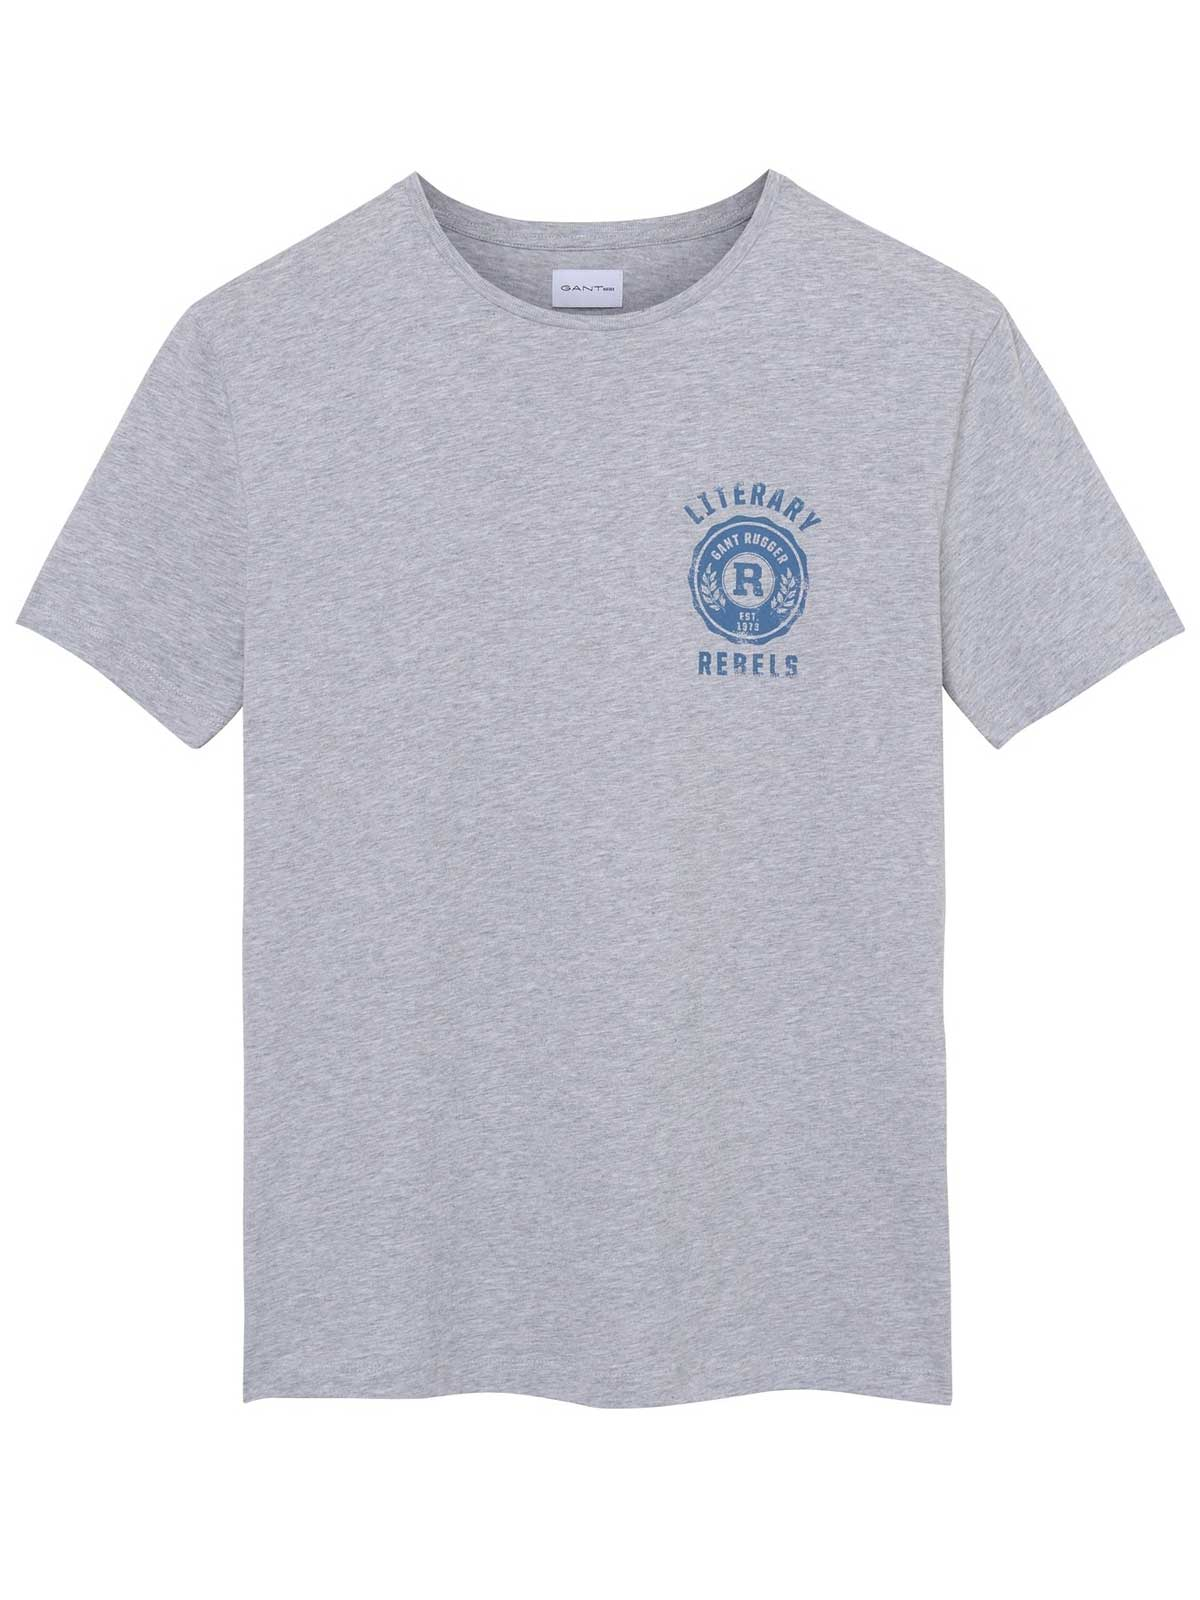 Picture of GANT | Men's Literary Rebels Tee